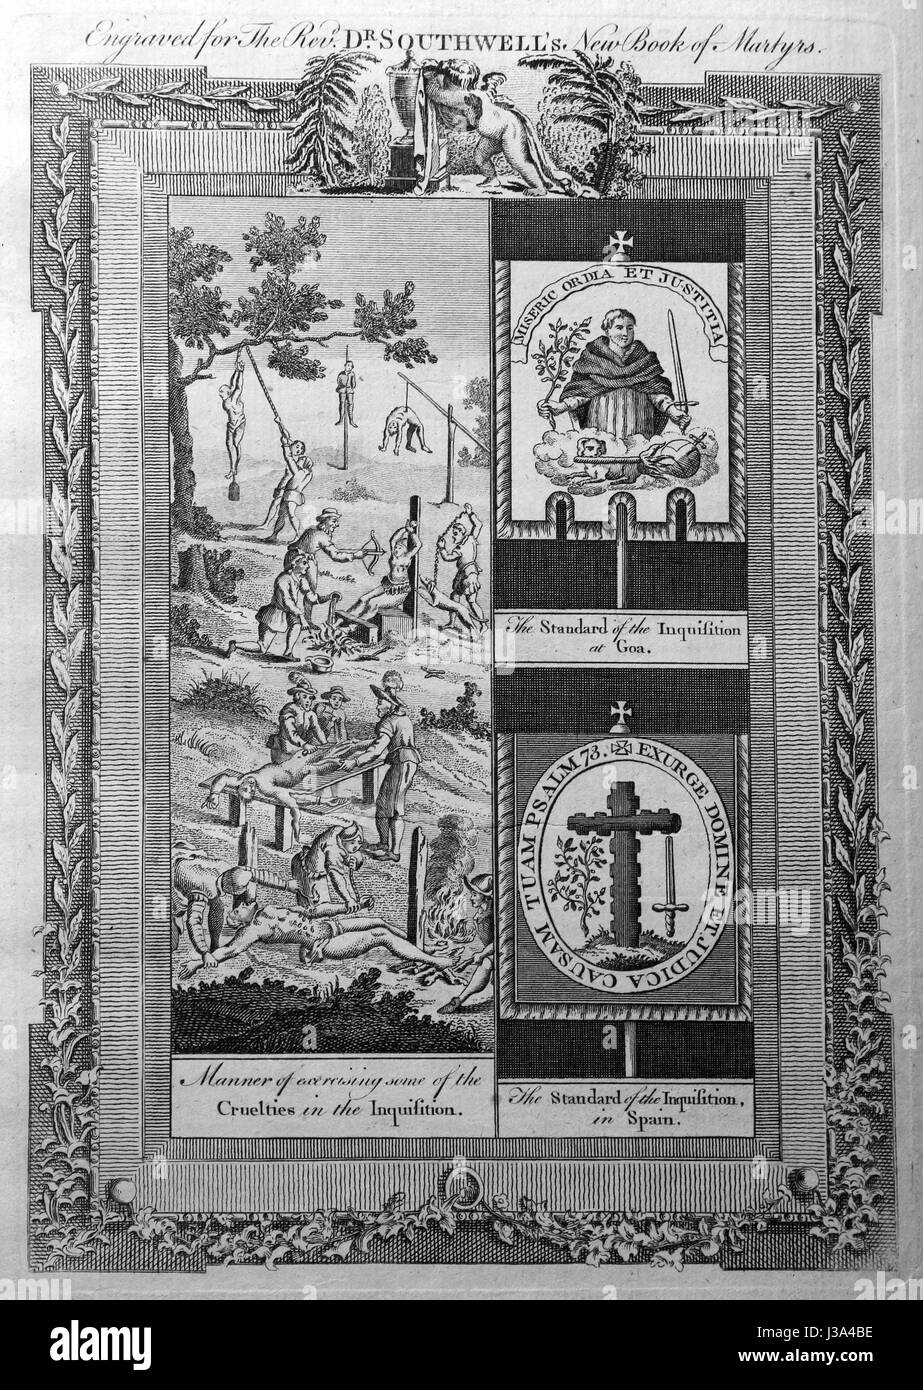 Engraving from c 1780 edition of The New Book of Martyrs by Rev Dr Henry Southwell LLD. Manner of expressing some - Stock Image